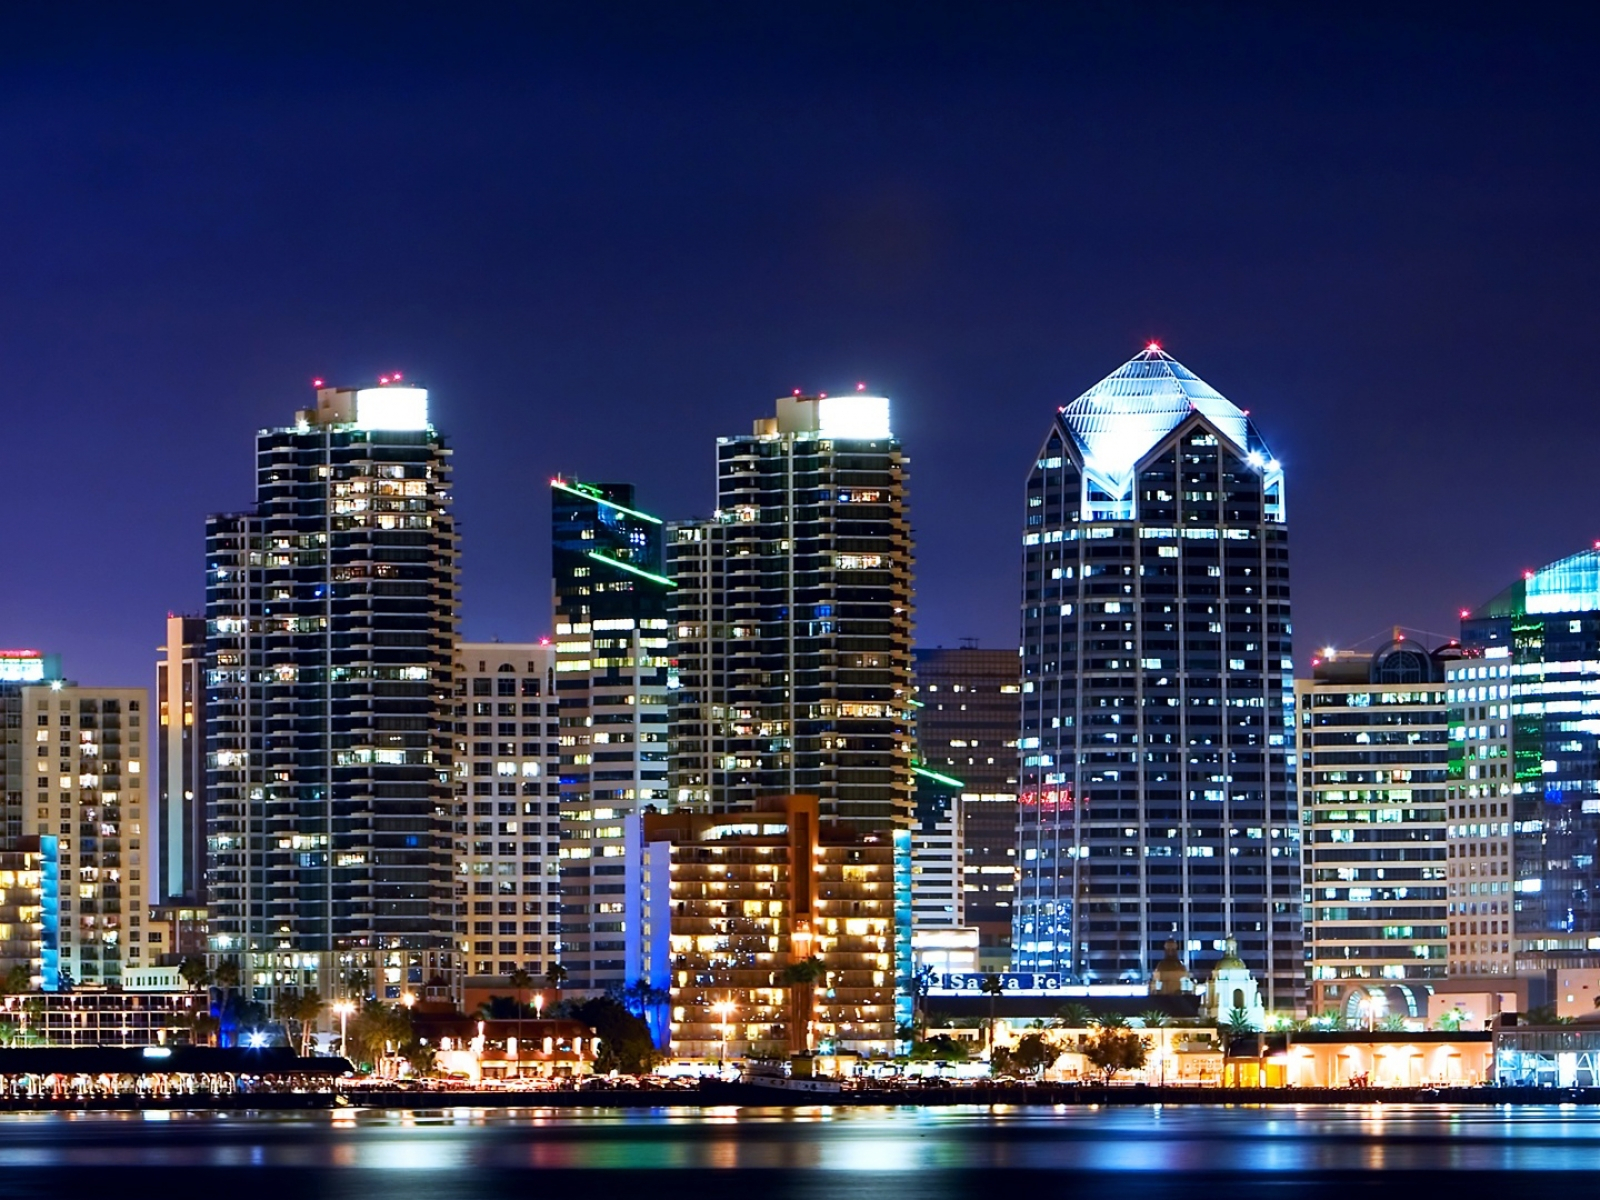 Hd Wallpapers San Diego California 2880 X 1800 566 Kb Jpeg HD 1600x1200